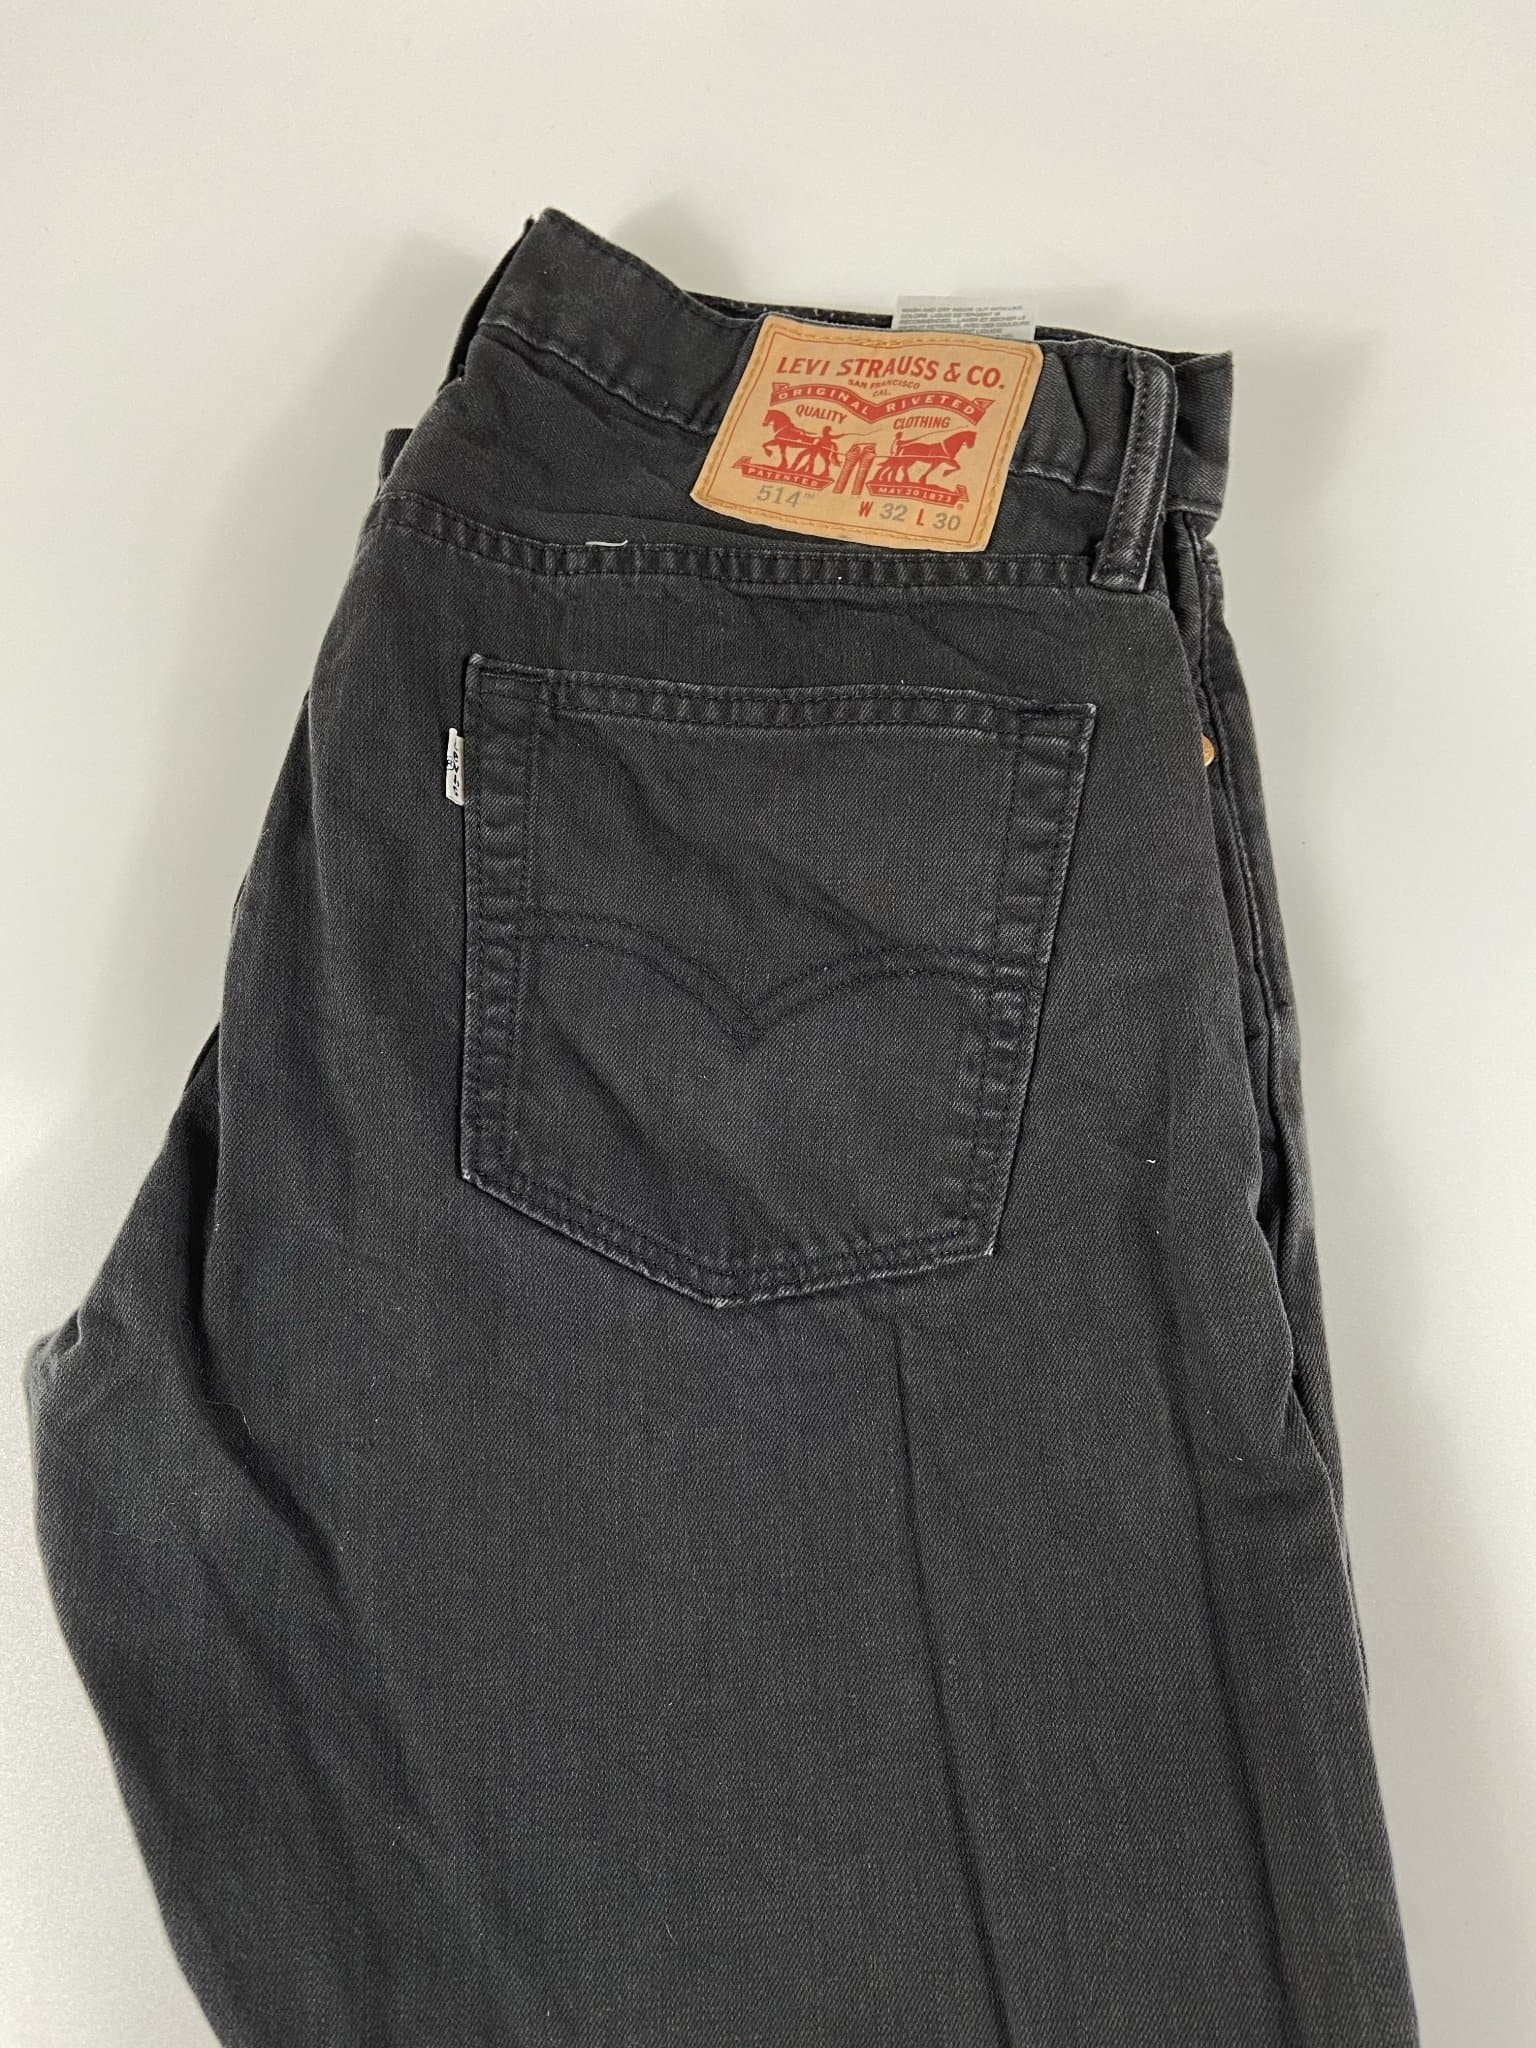 Vintage Levi's 514 Classic Zip Fly Jeans W32 L30 (I11) - Discounted Deals UK